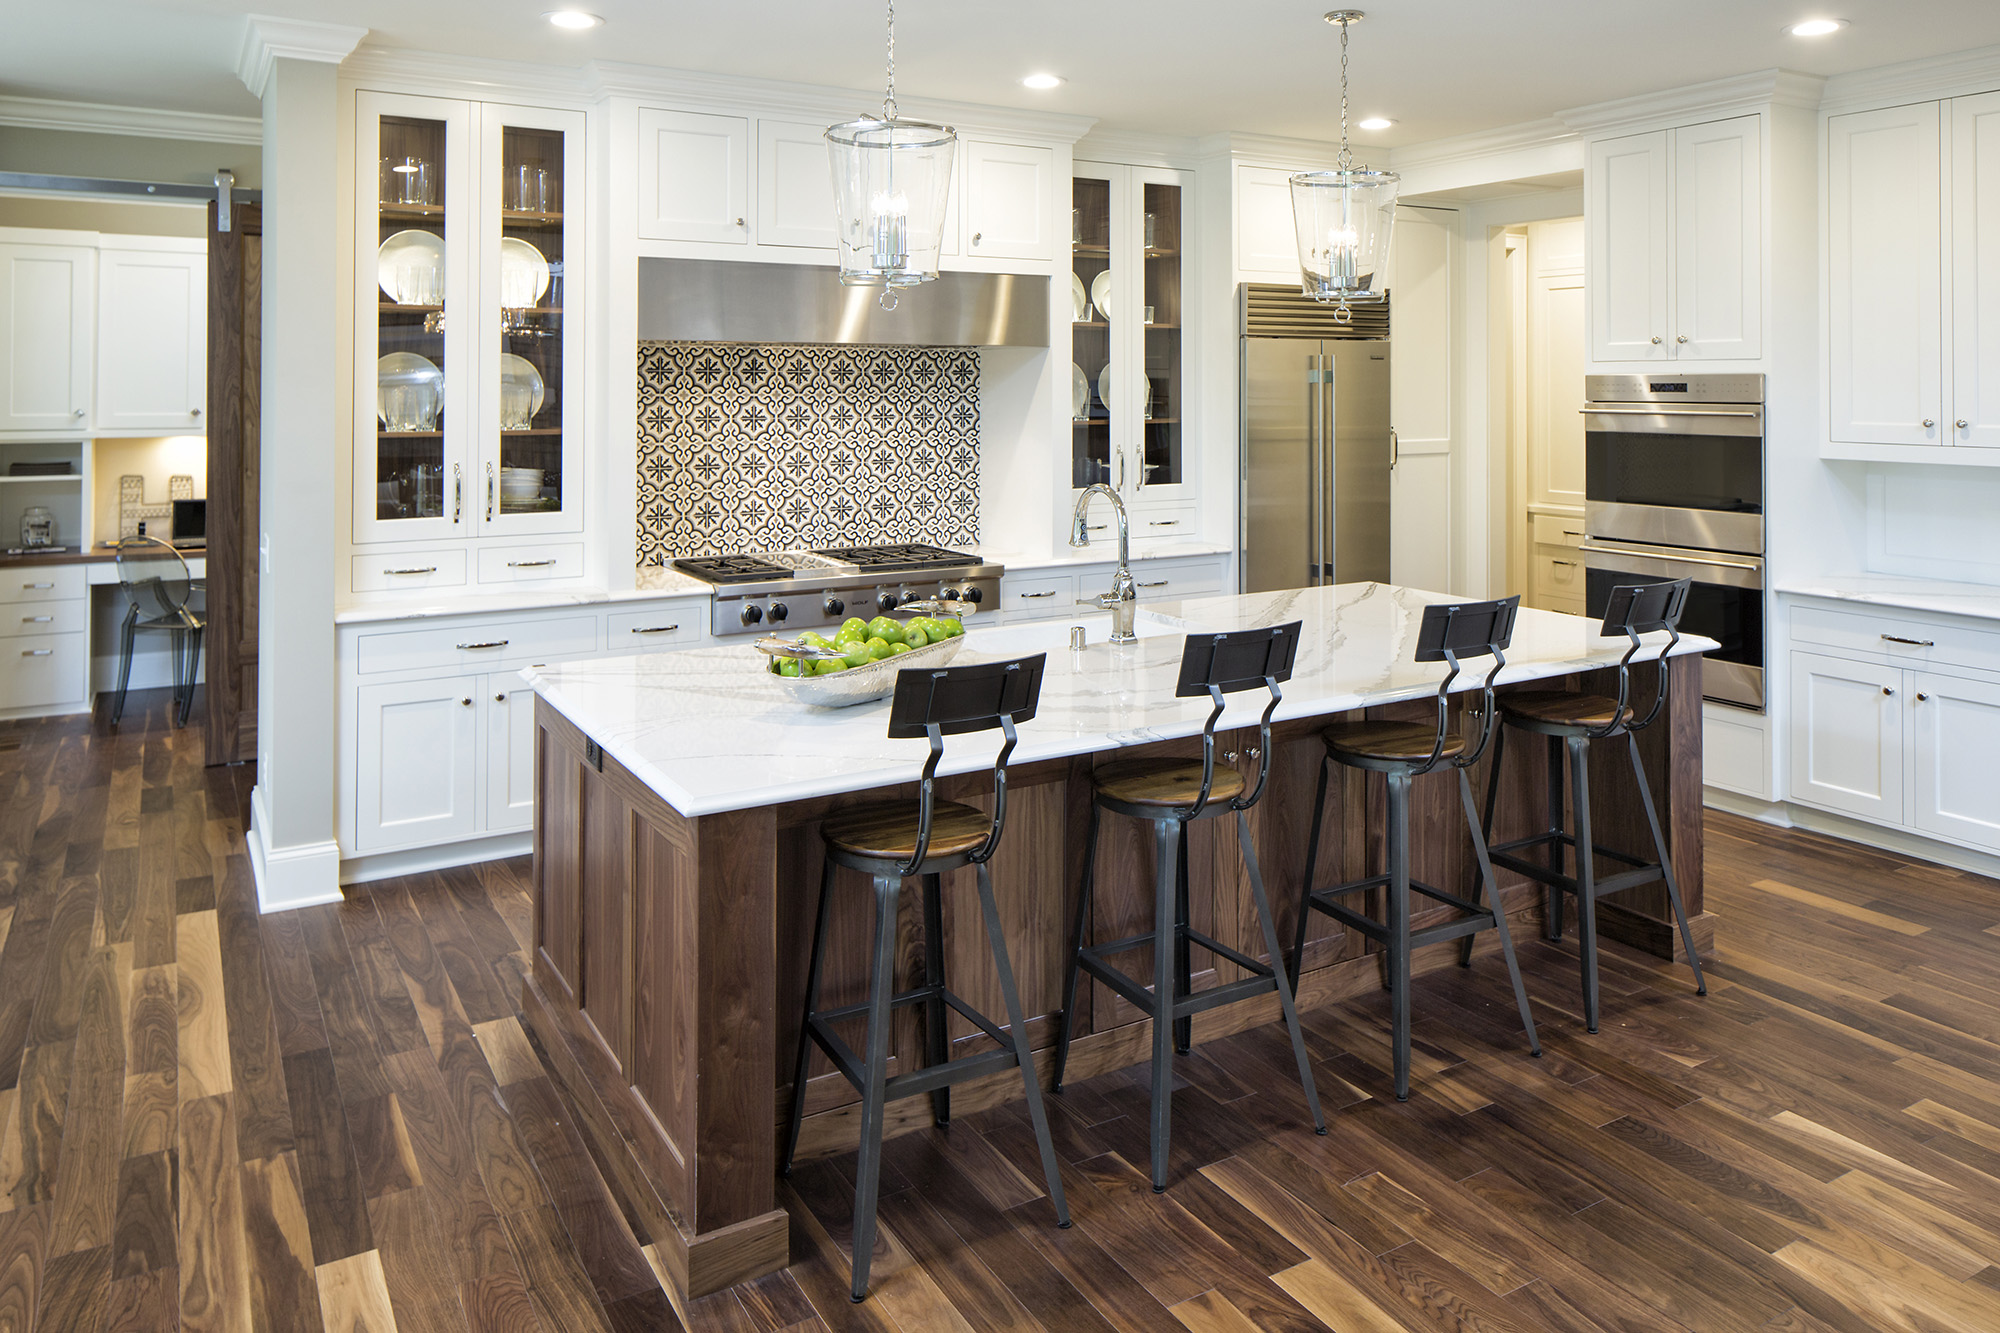 Reinvent Your Home With Custom Cabinets And Bring Order Beauty Livability To Every Room